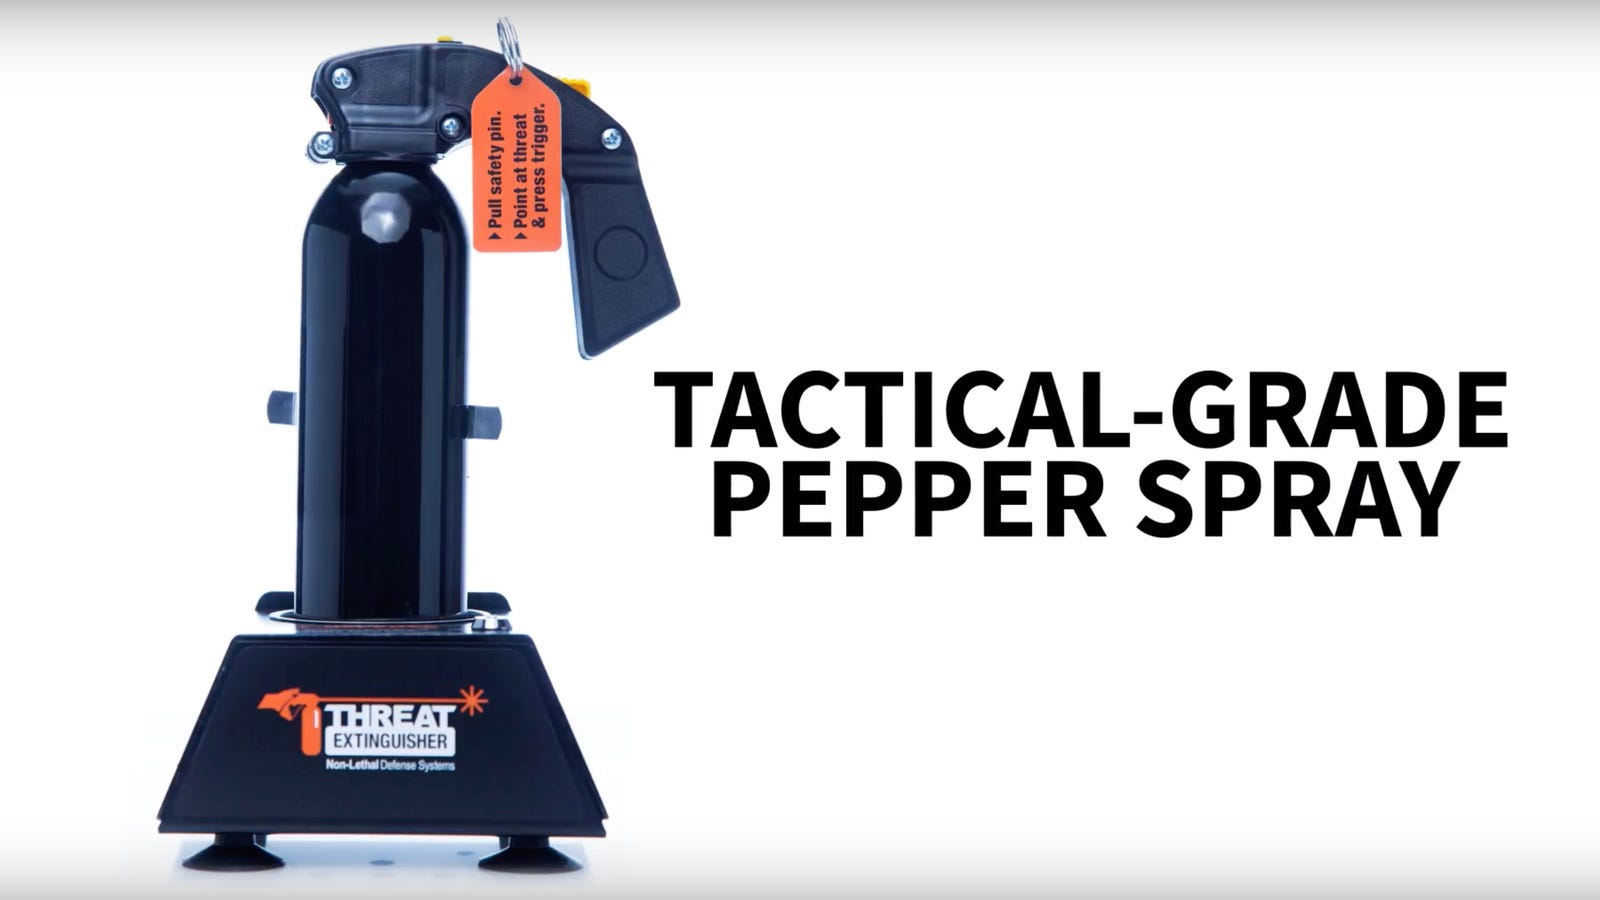 School District to Arm Students With Giant Pepper Spray Canisters to Deter Shooters